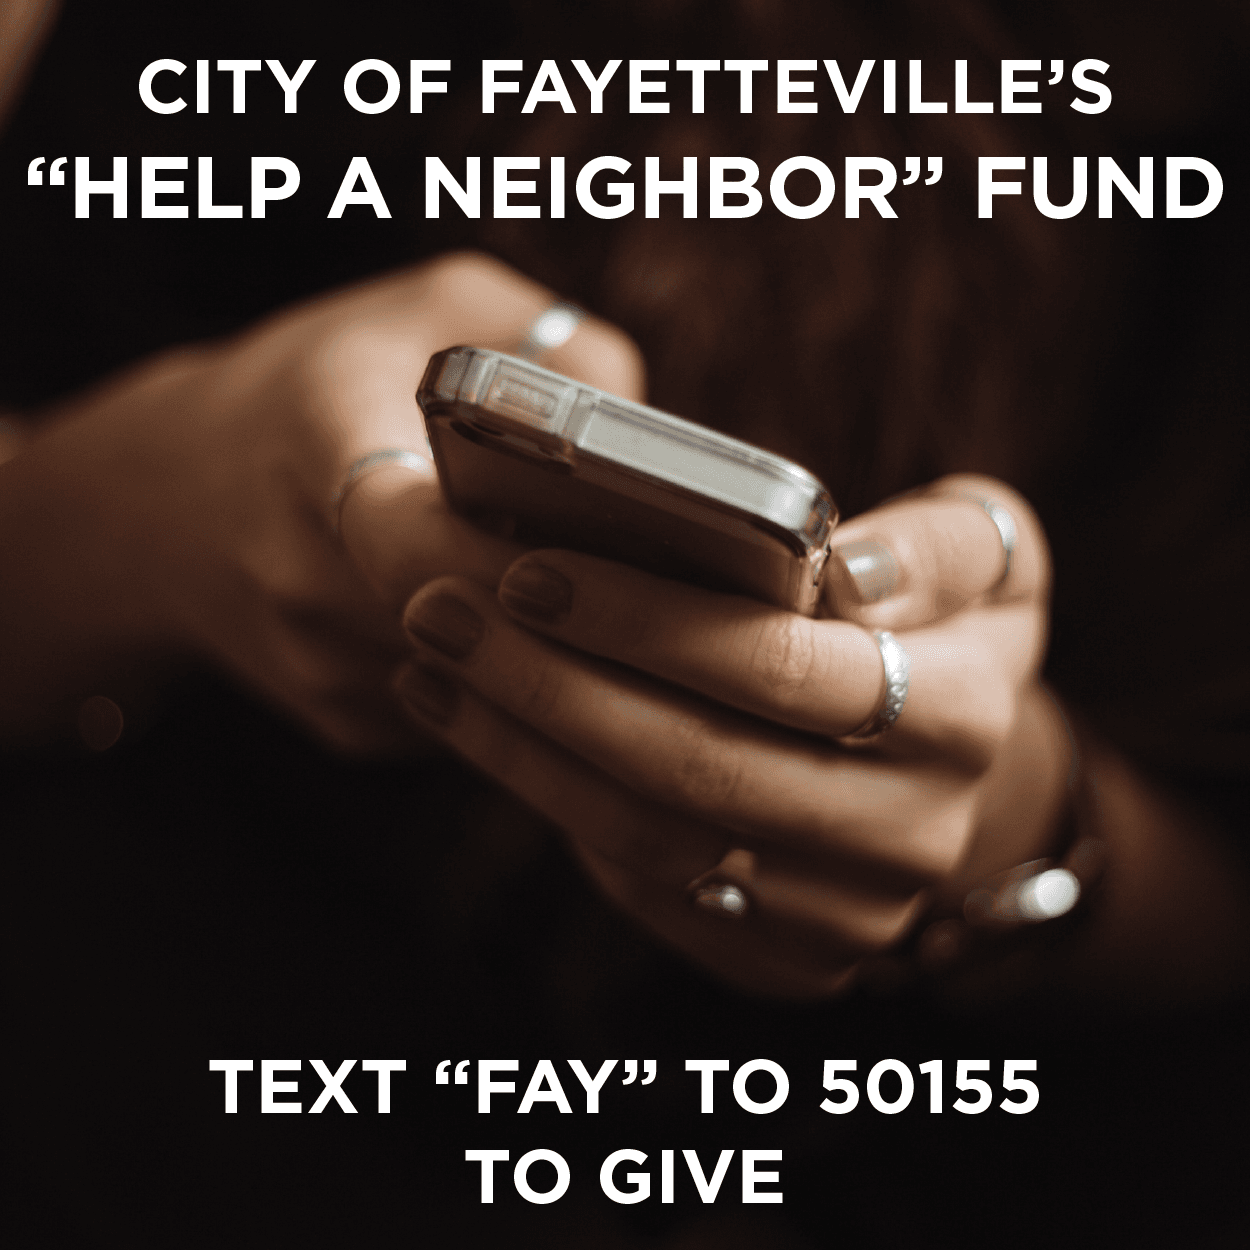 "City of Fayetteville ""Help a Neighbor"" Fund: text ""FAY"" to 50155 to donate."